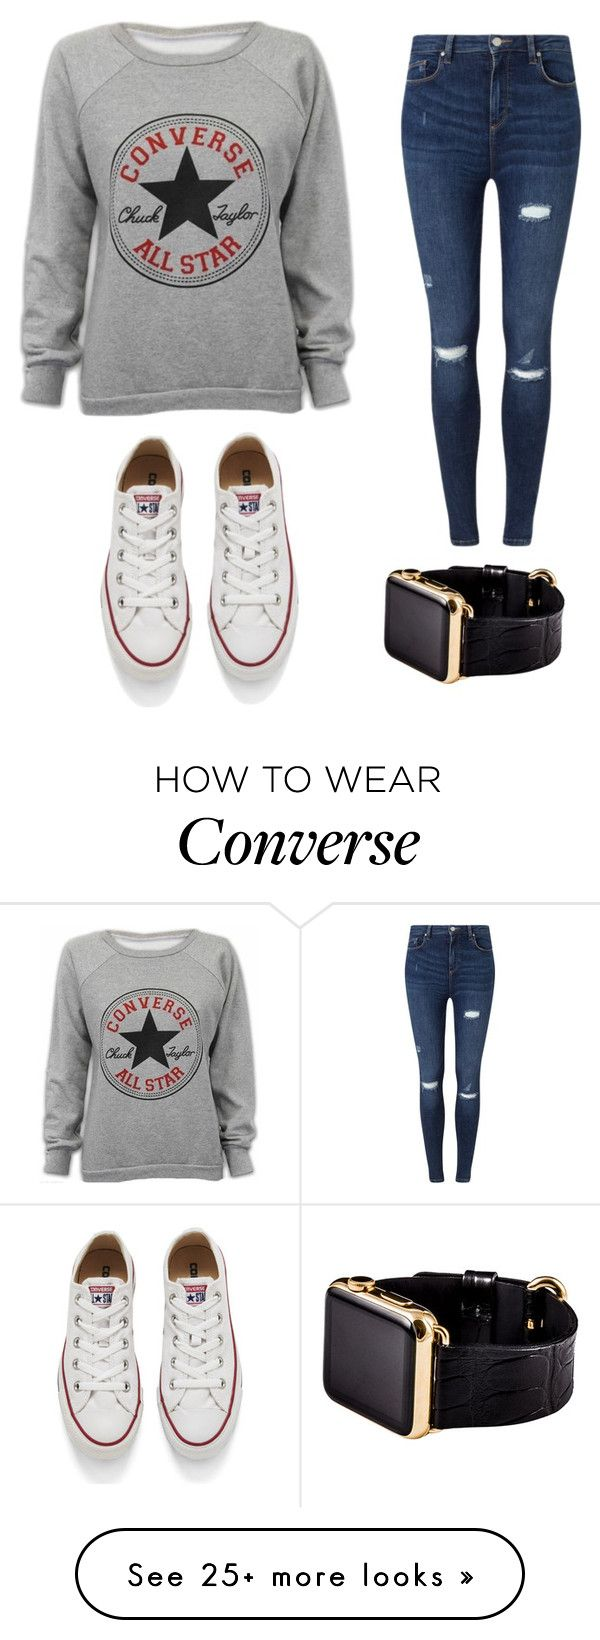 """Converse"" by softball1716 on Polyvore featuring Converse, Miss Selfridge, Hadoro, women's clothing, women, female, woman, misses and juniors"